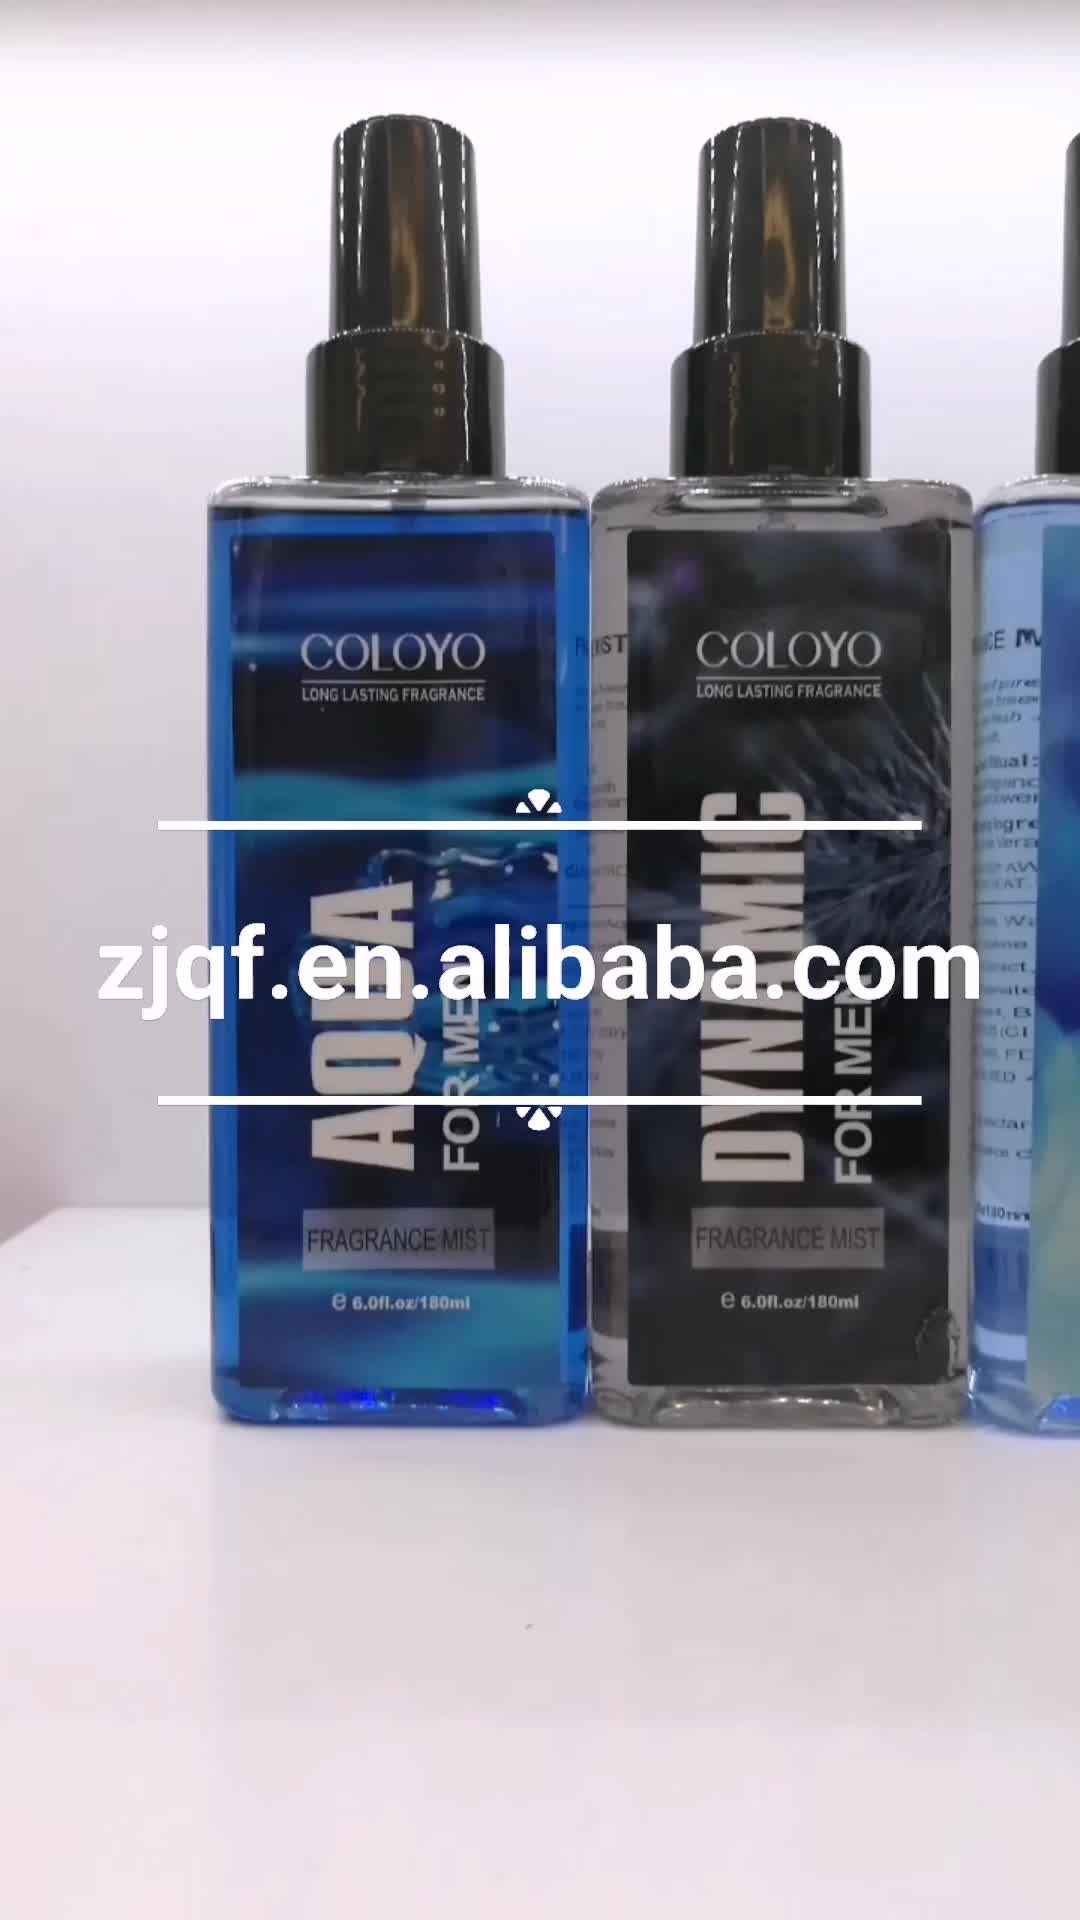 Allure Homme Sport 180ml Cologne Allure Homme Sport Buy Allure Homme Sport